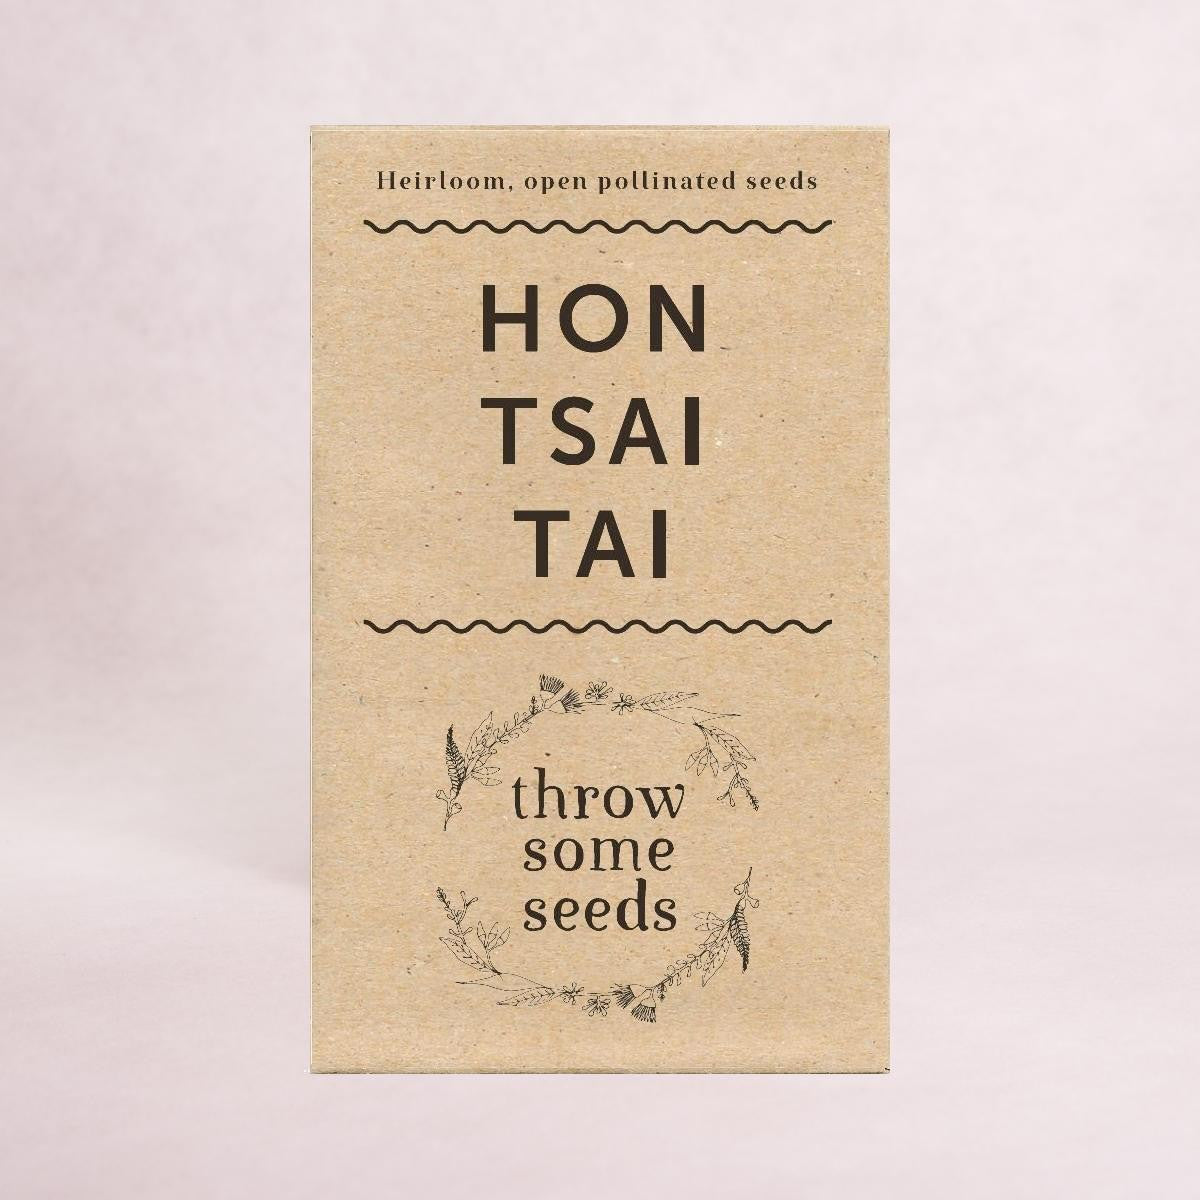 Hon Tsai Tai Seeds - Seeds - Throw Some Seeds - Australian gardening gifts and eco products online!